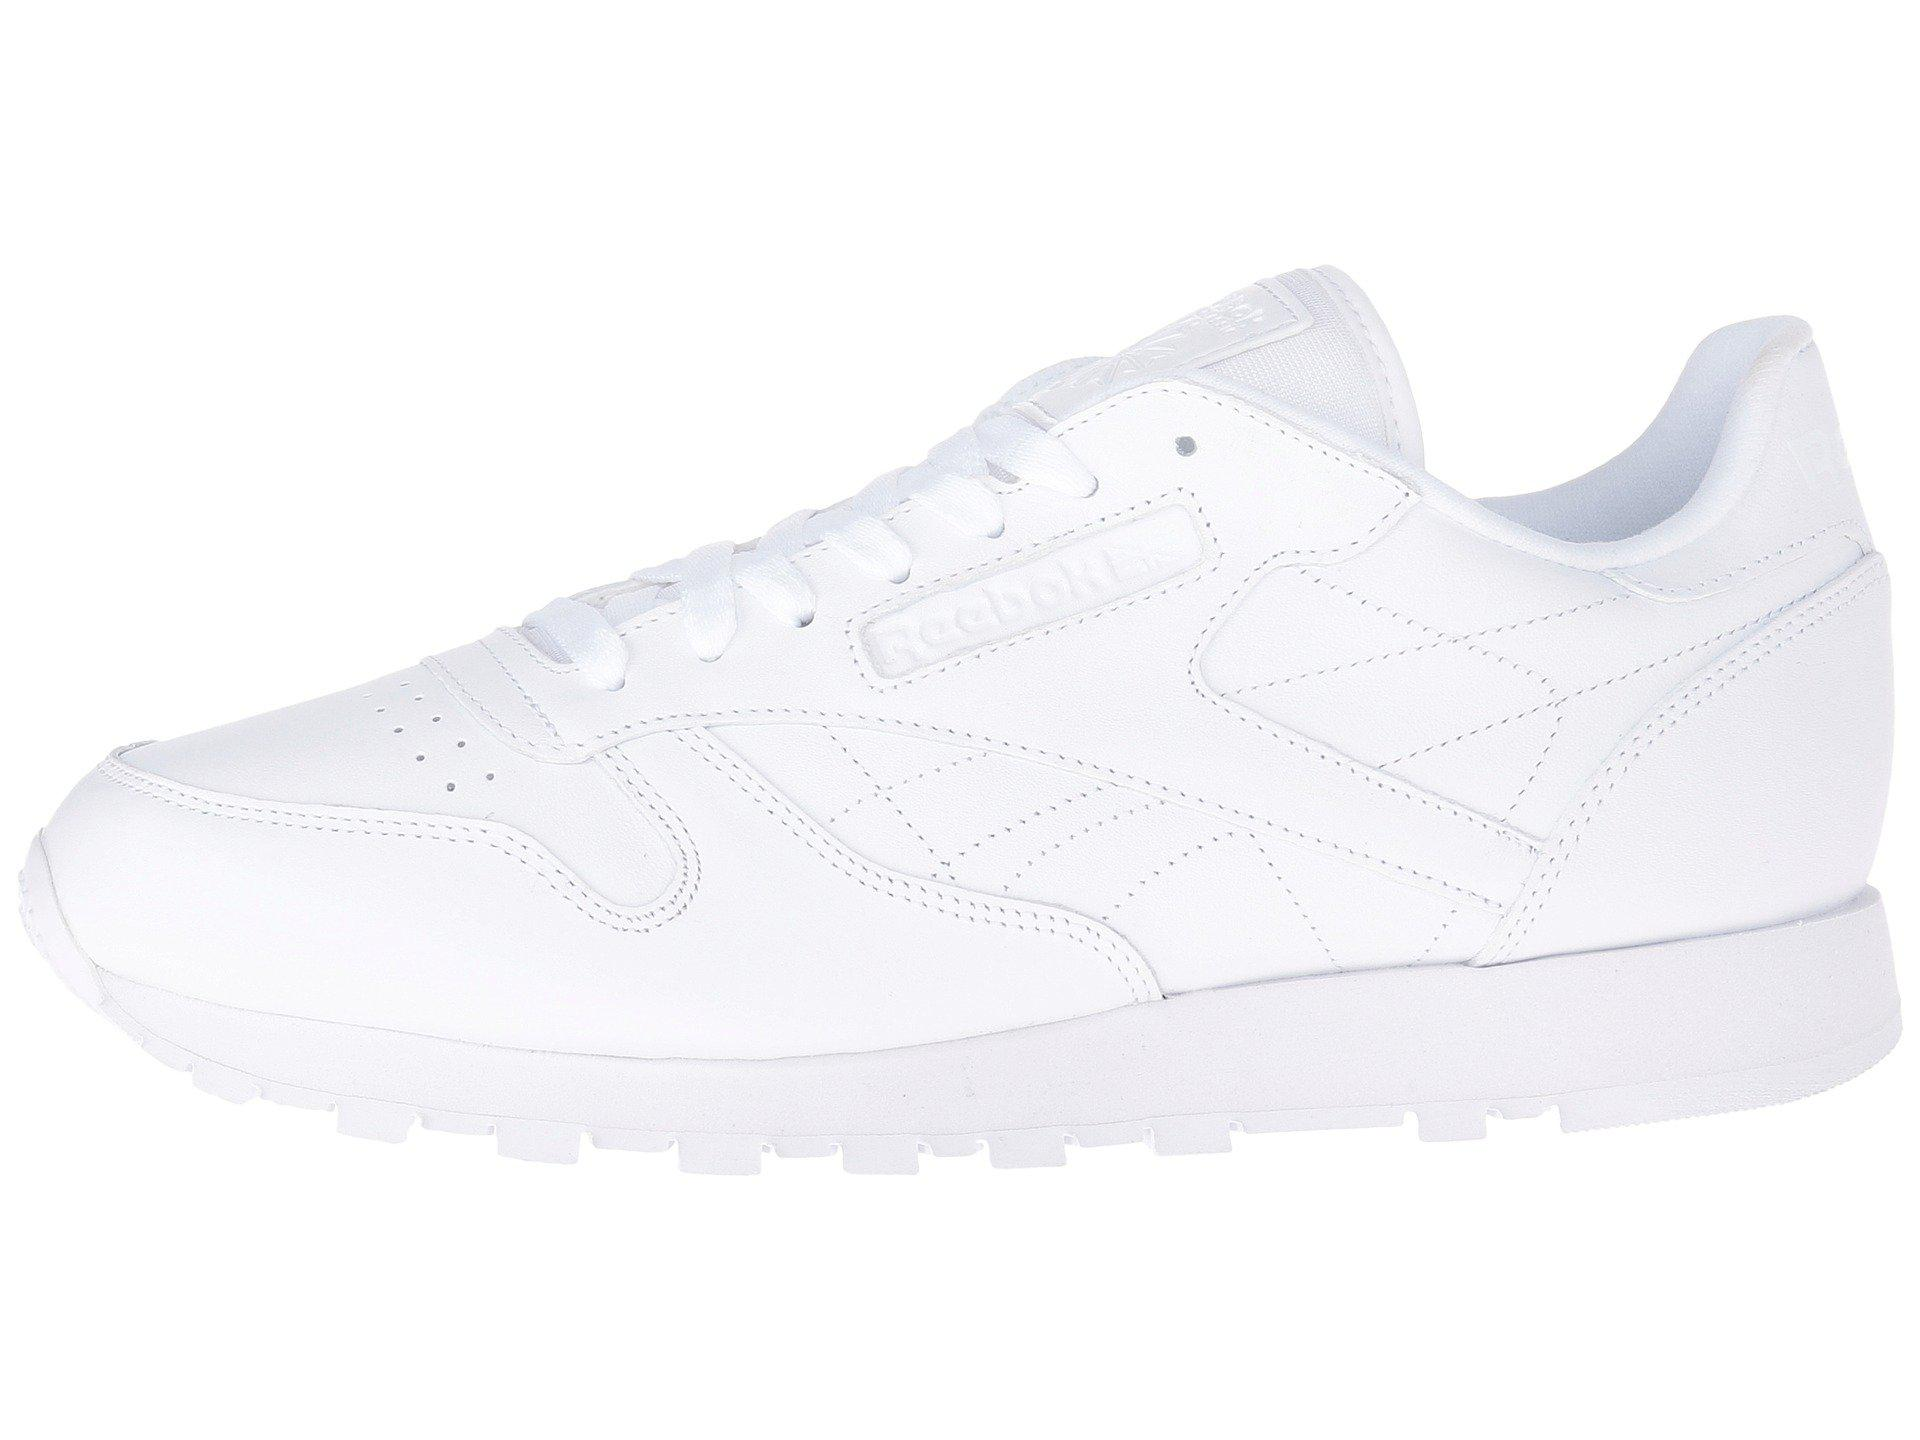 075613209ebfe Lyst - Reebok Classic Leather Ctm in White for Men - Save 25%